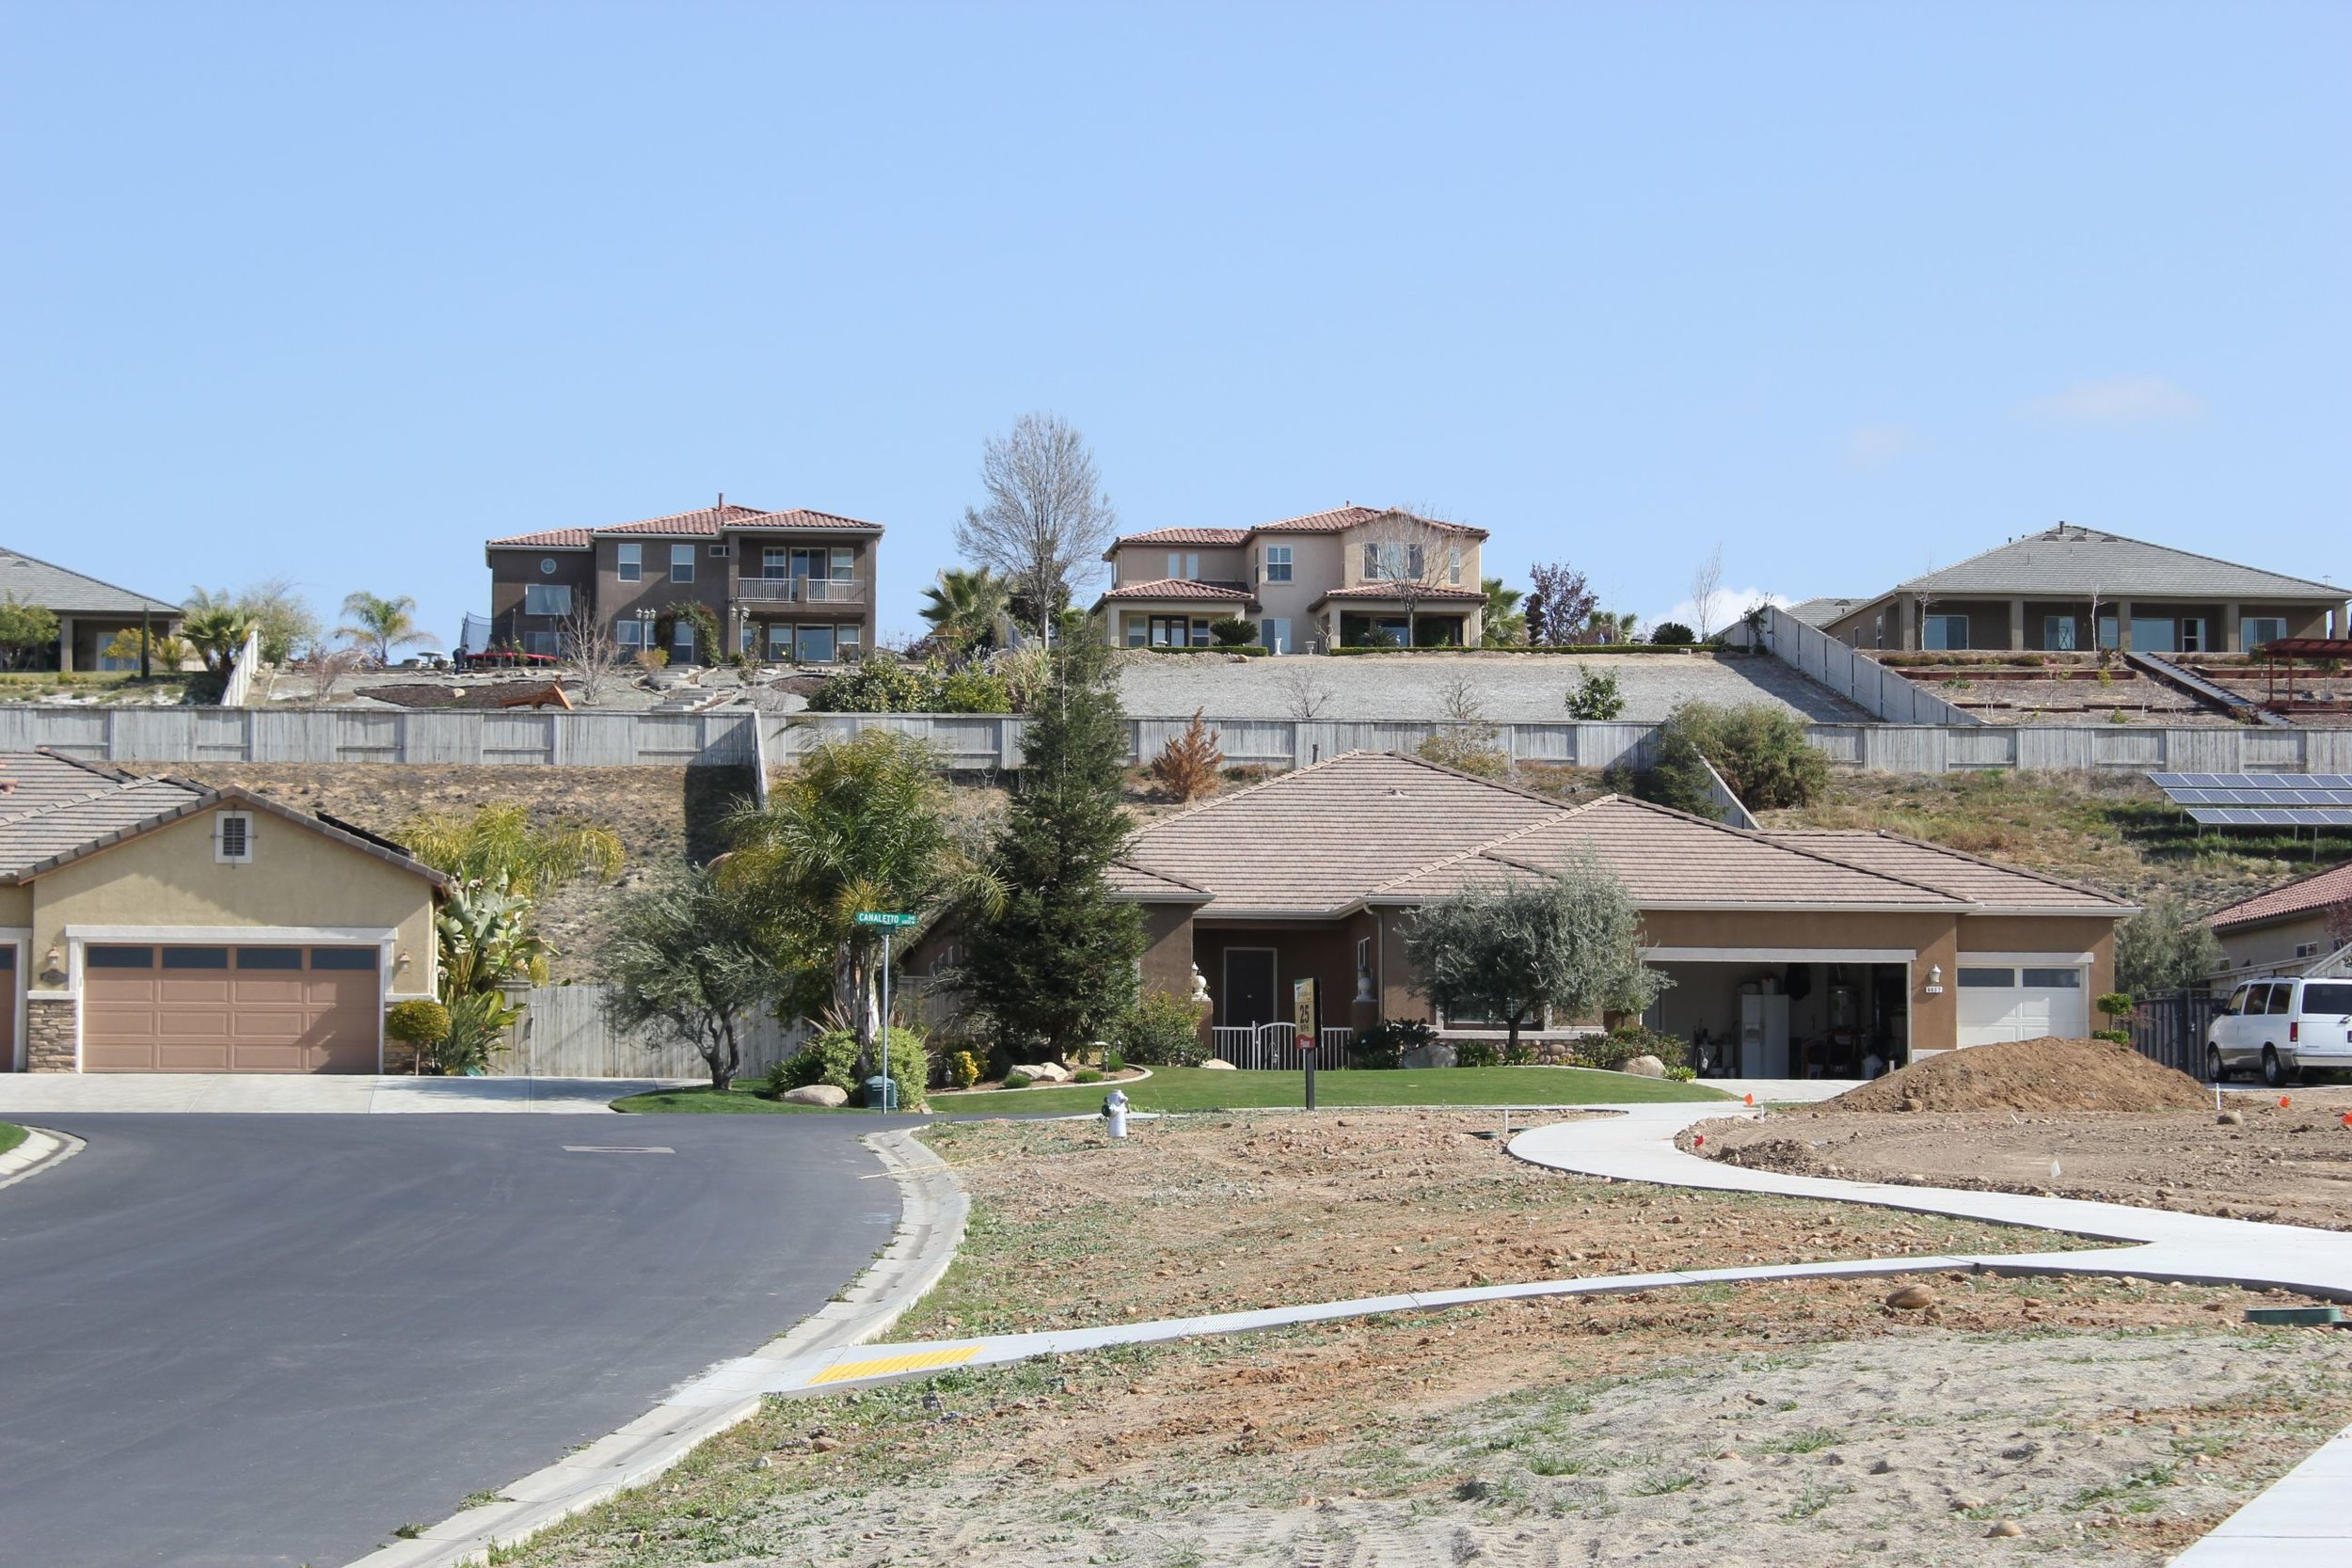 Standard of Care/Cost of Repair - Single-Family Residential - Bakersfield, CA